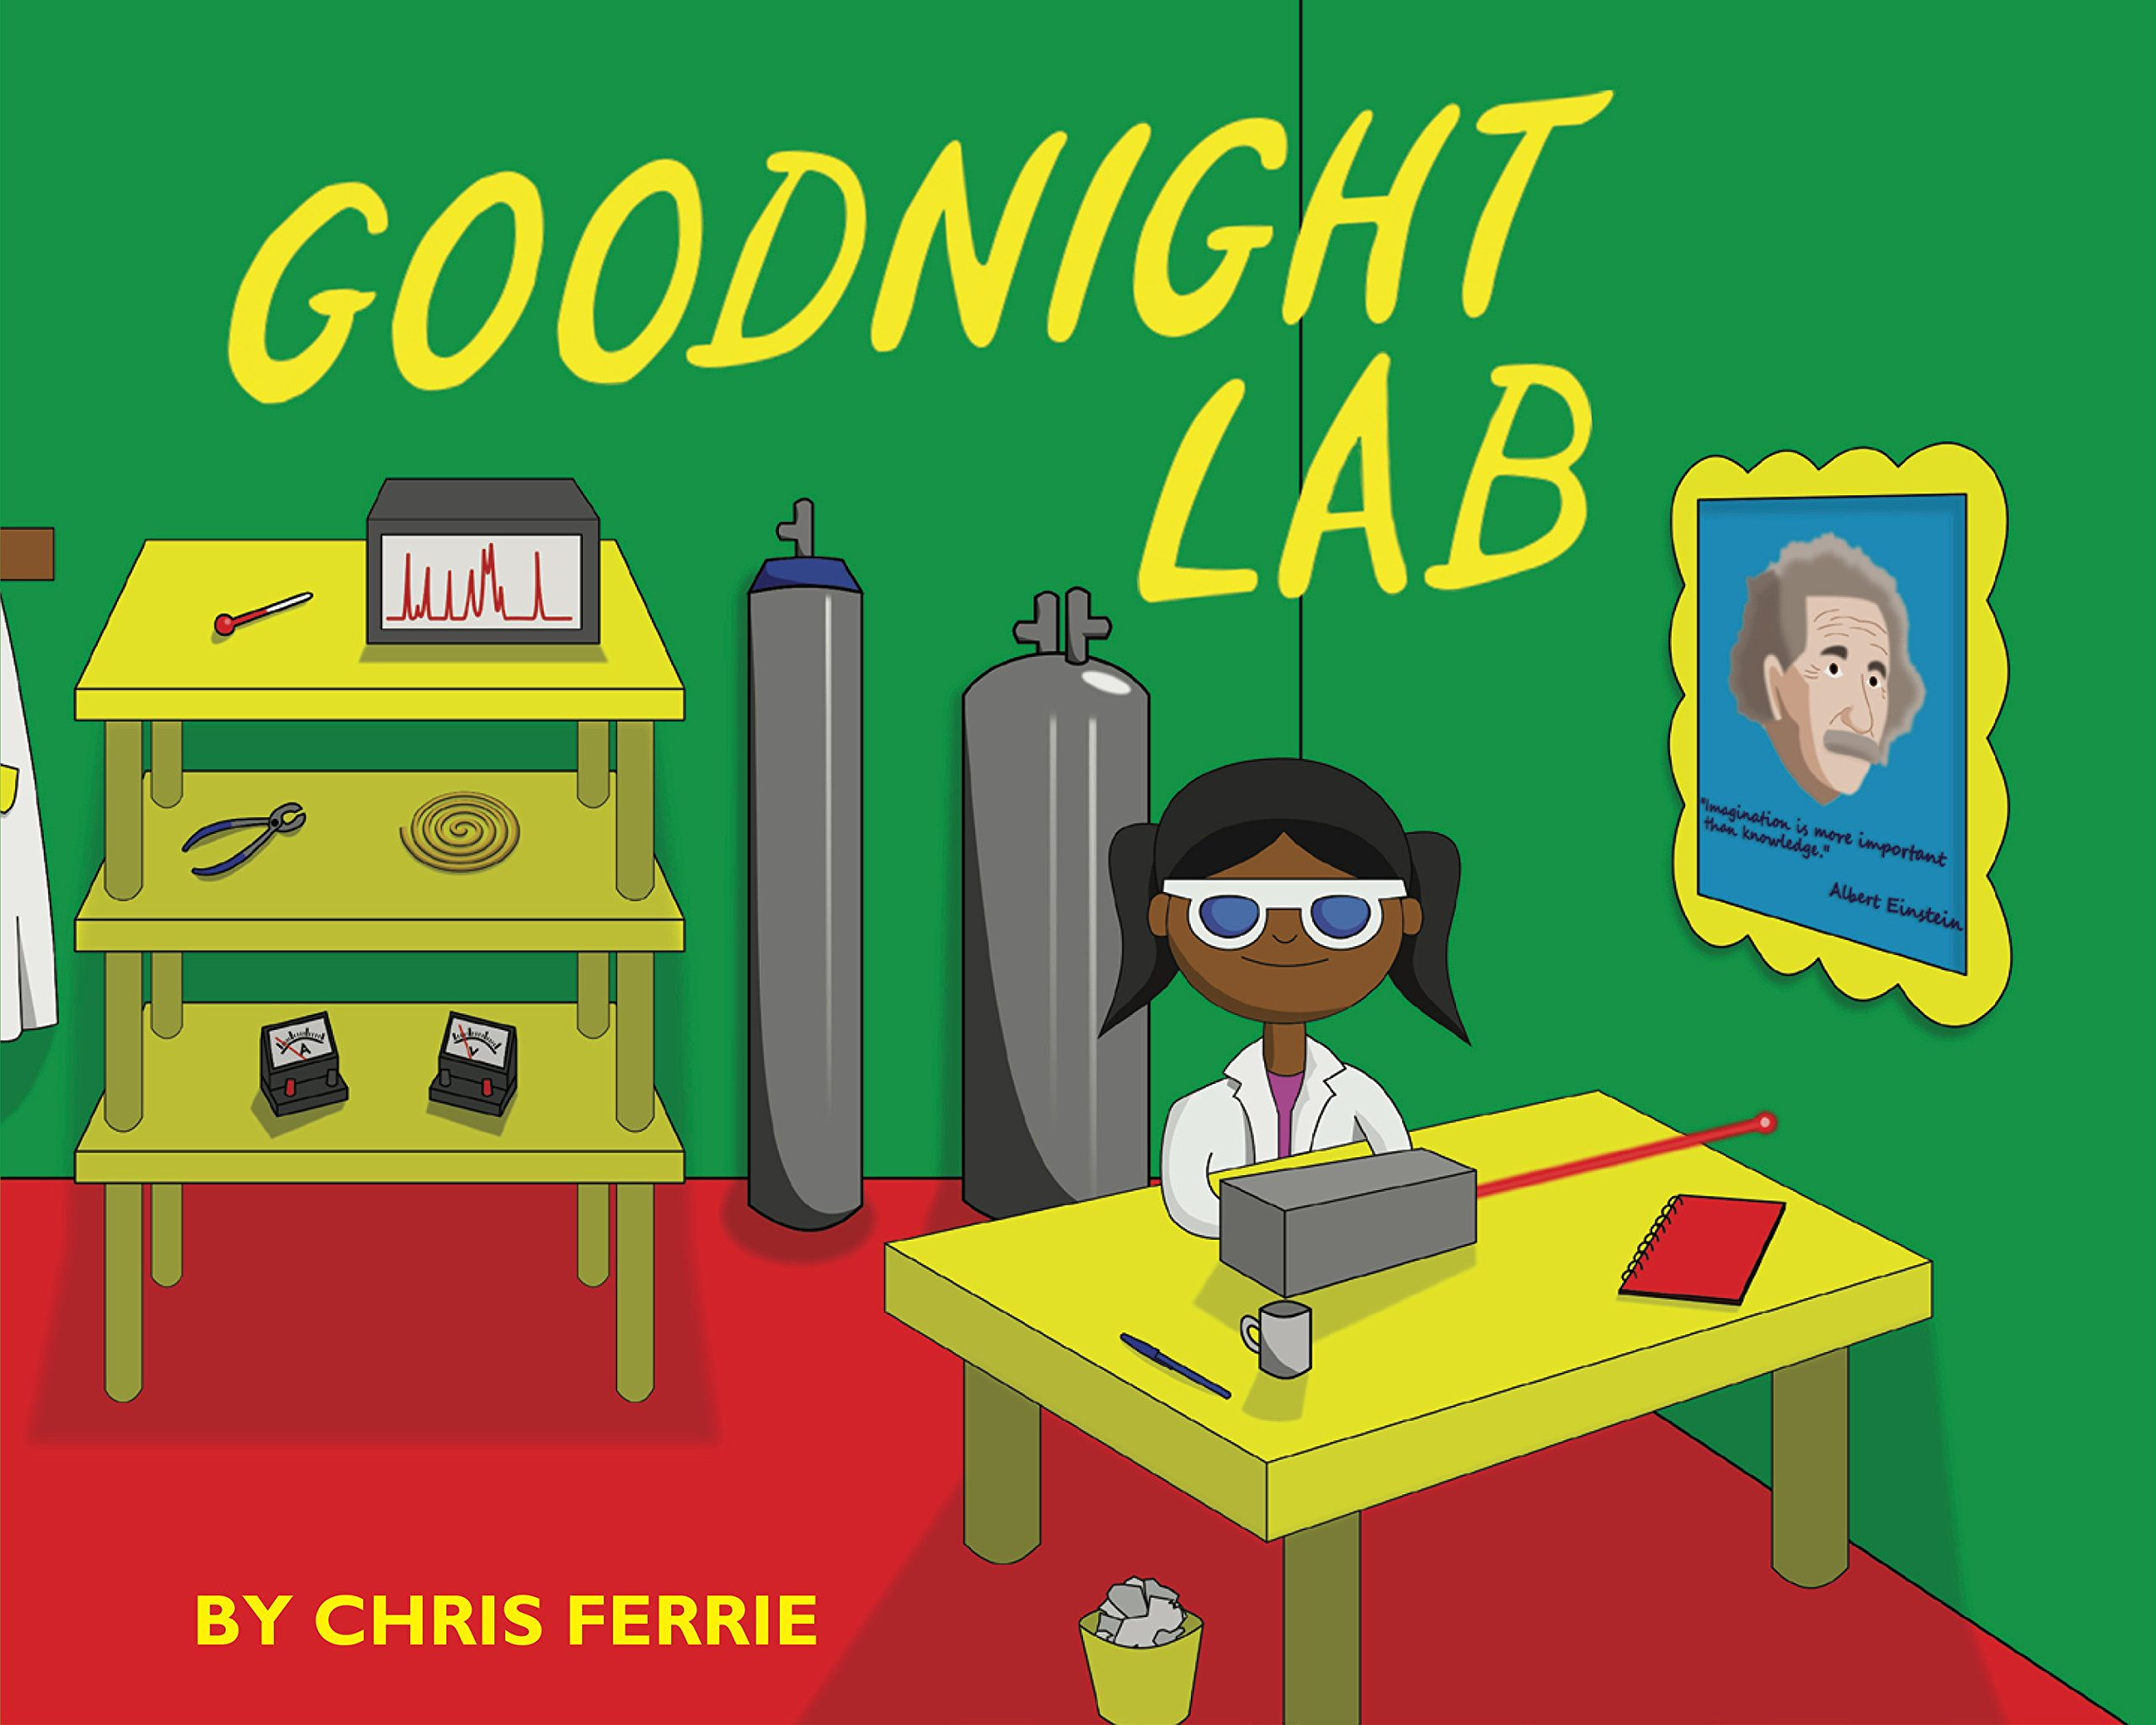 Goodnight lab a scientific parody baby university chris ferrie goodnight lab a scientific parody baby university chris ferrie 9781492656173 amazon books altavistaventures Images